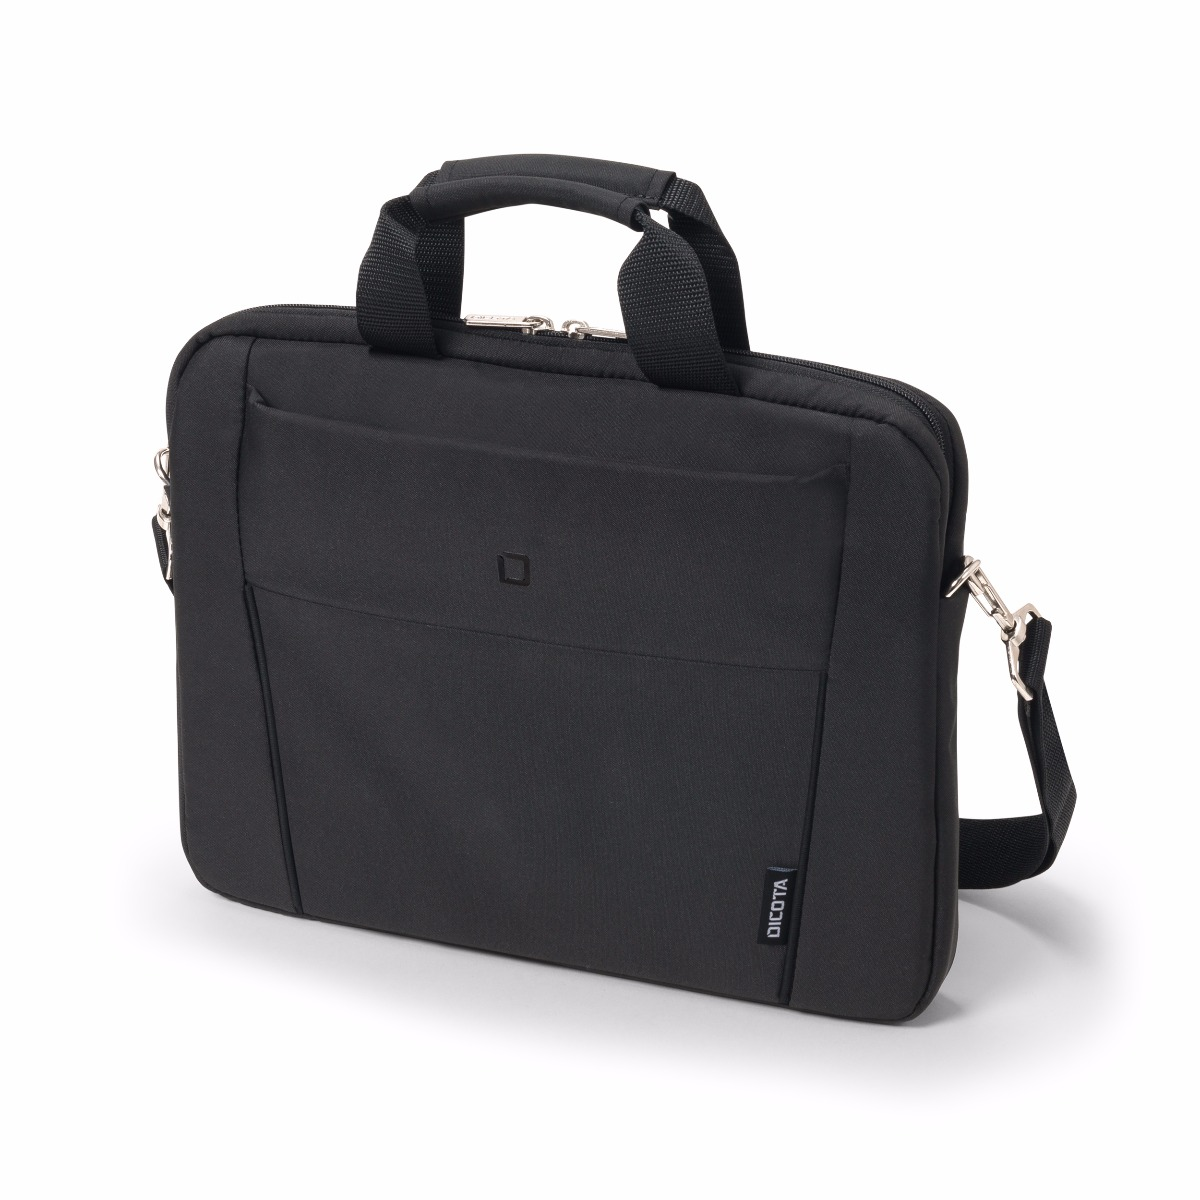 D31300 Dicota Slim Case BASE 11-12.5 black